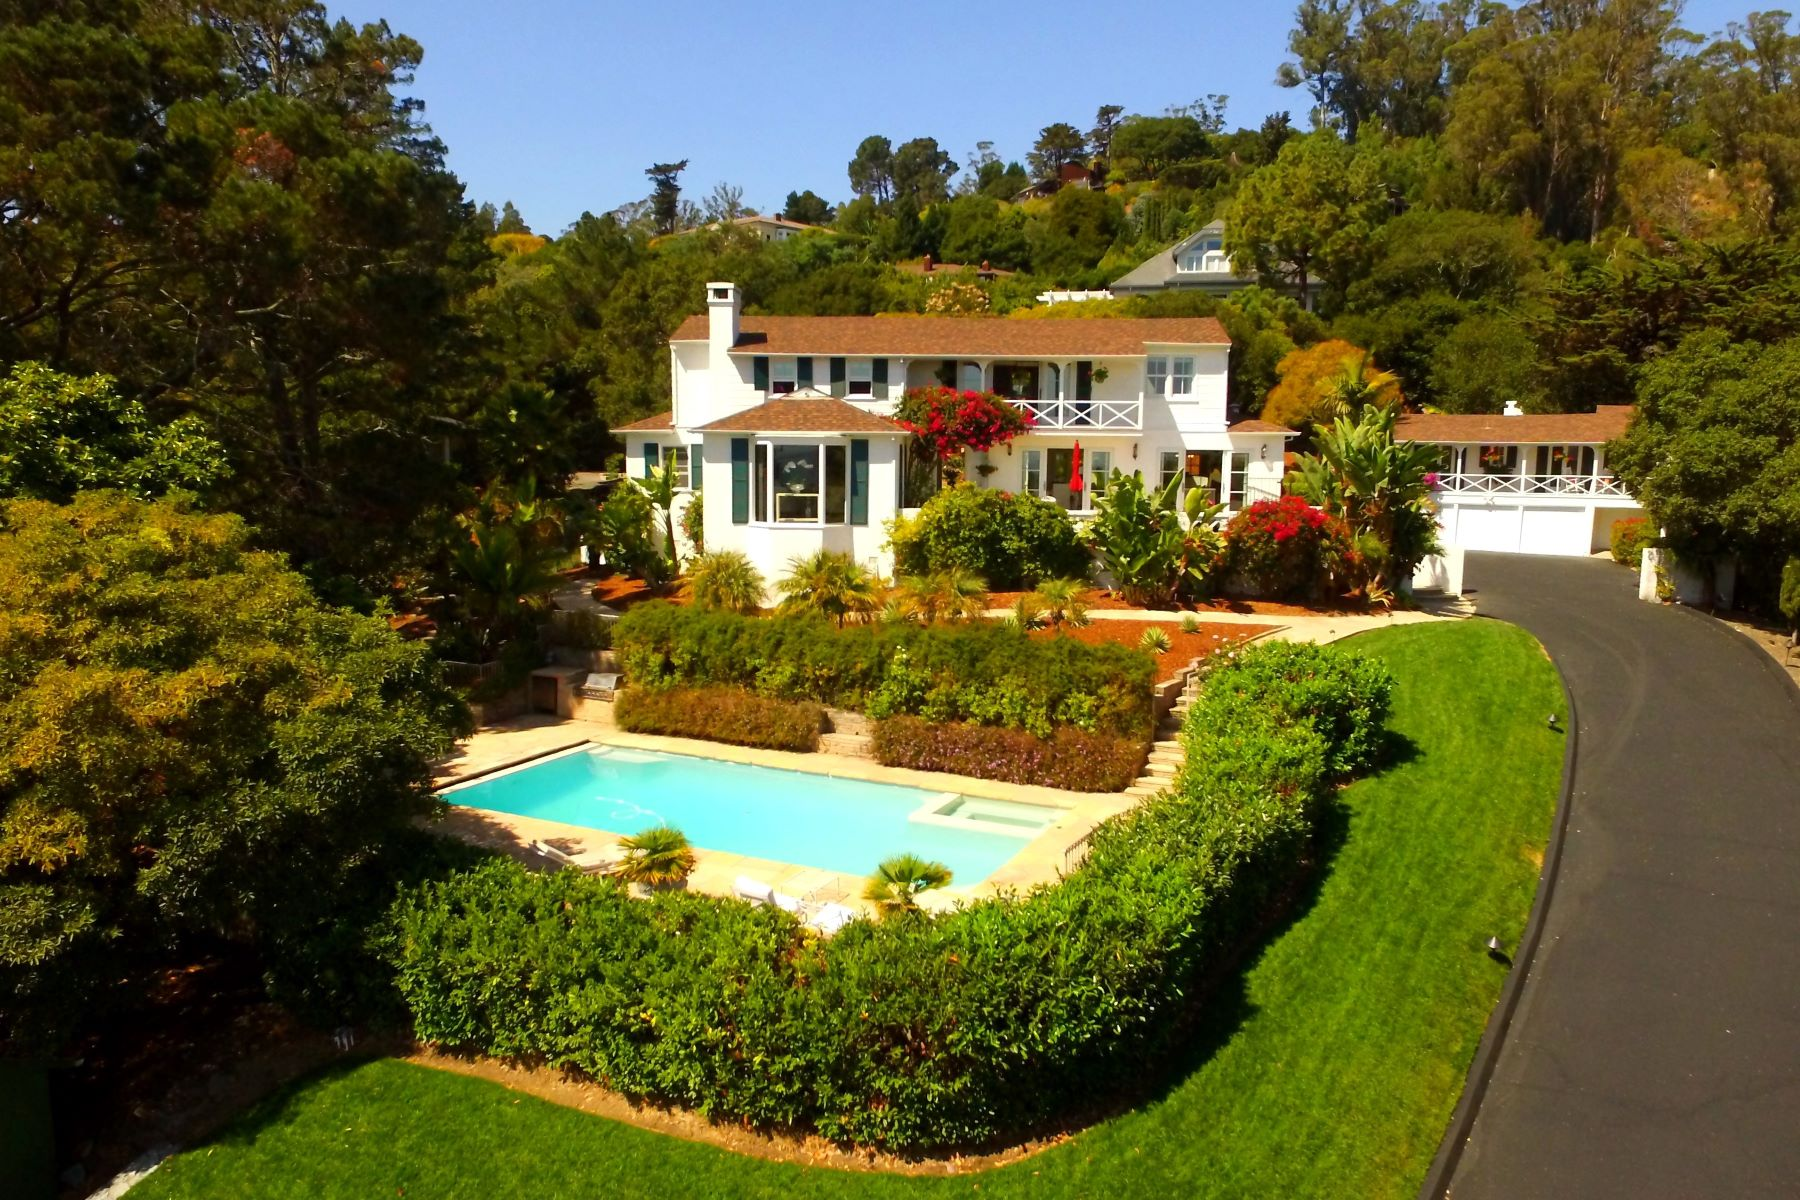 Single Family Home for Sale at Country Club - San Rafael 40 Fairway Drive San Rafael, California 94901 United States